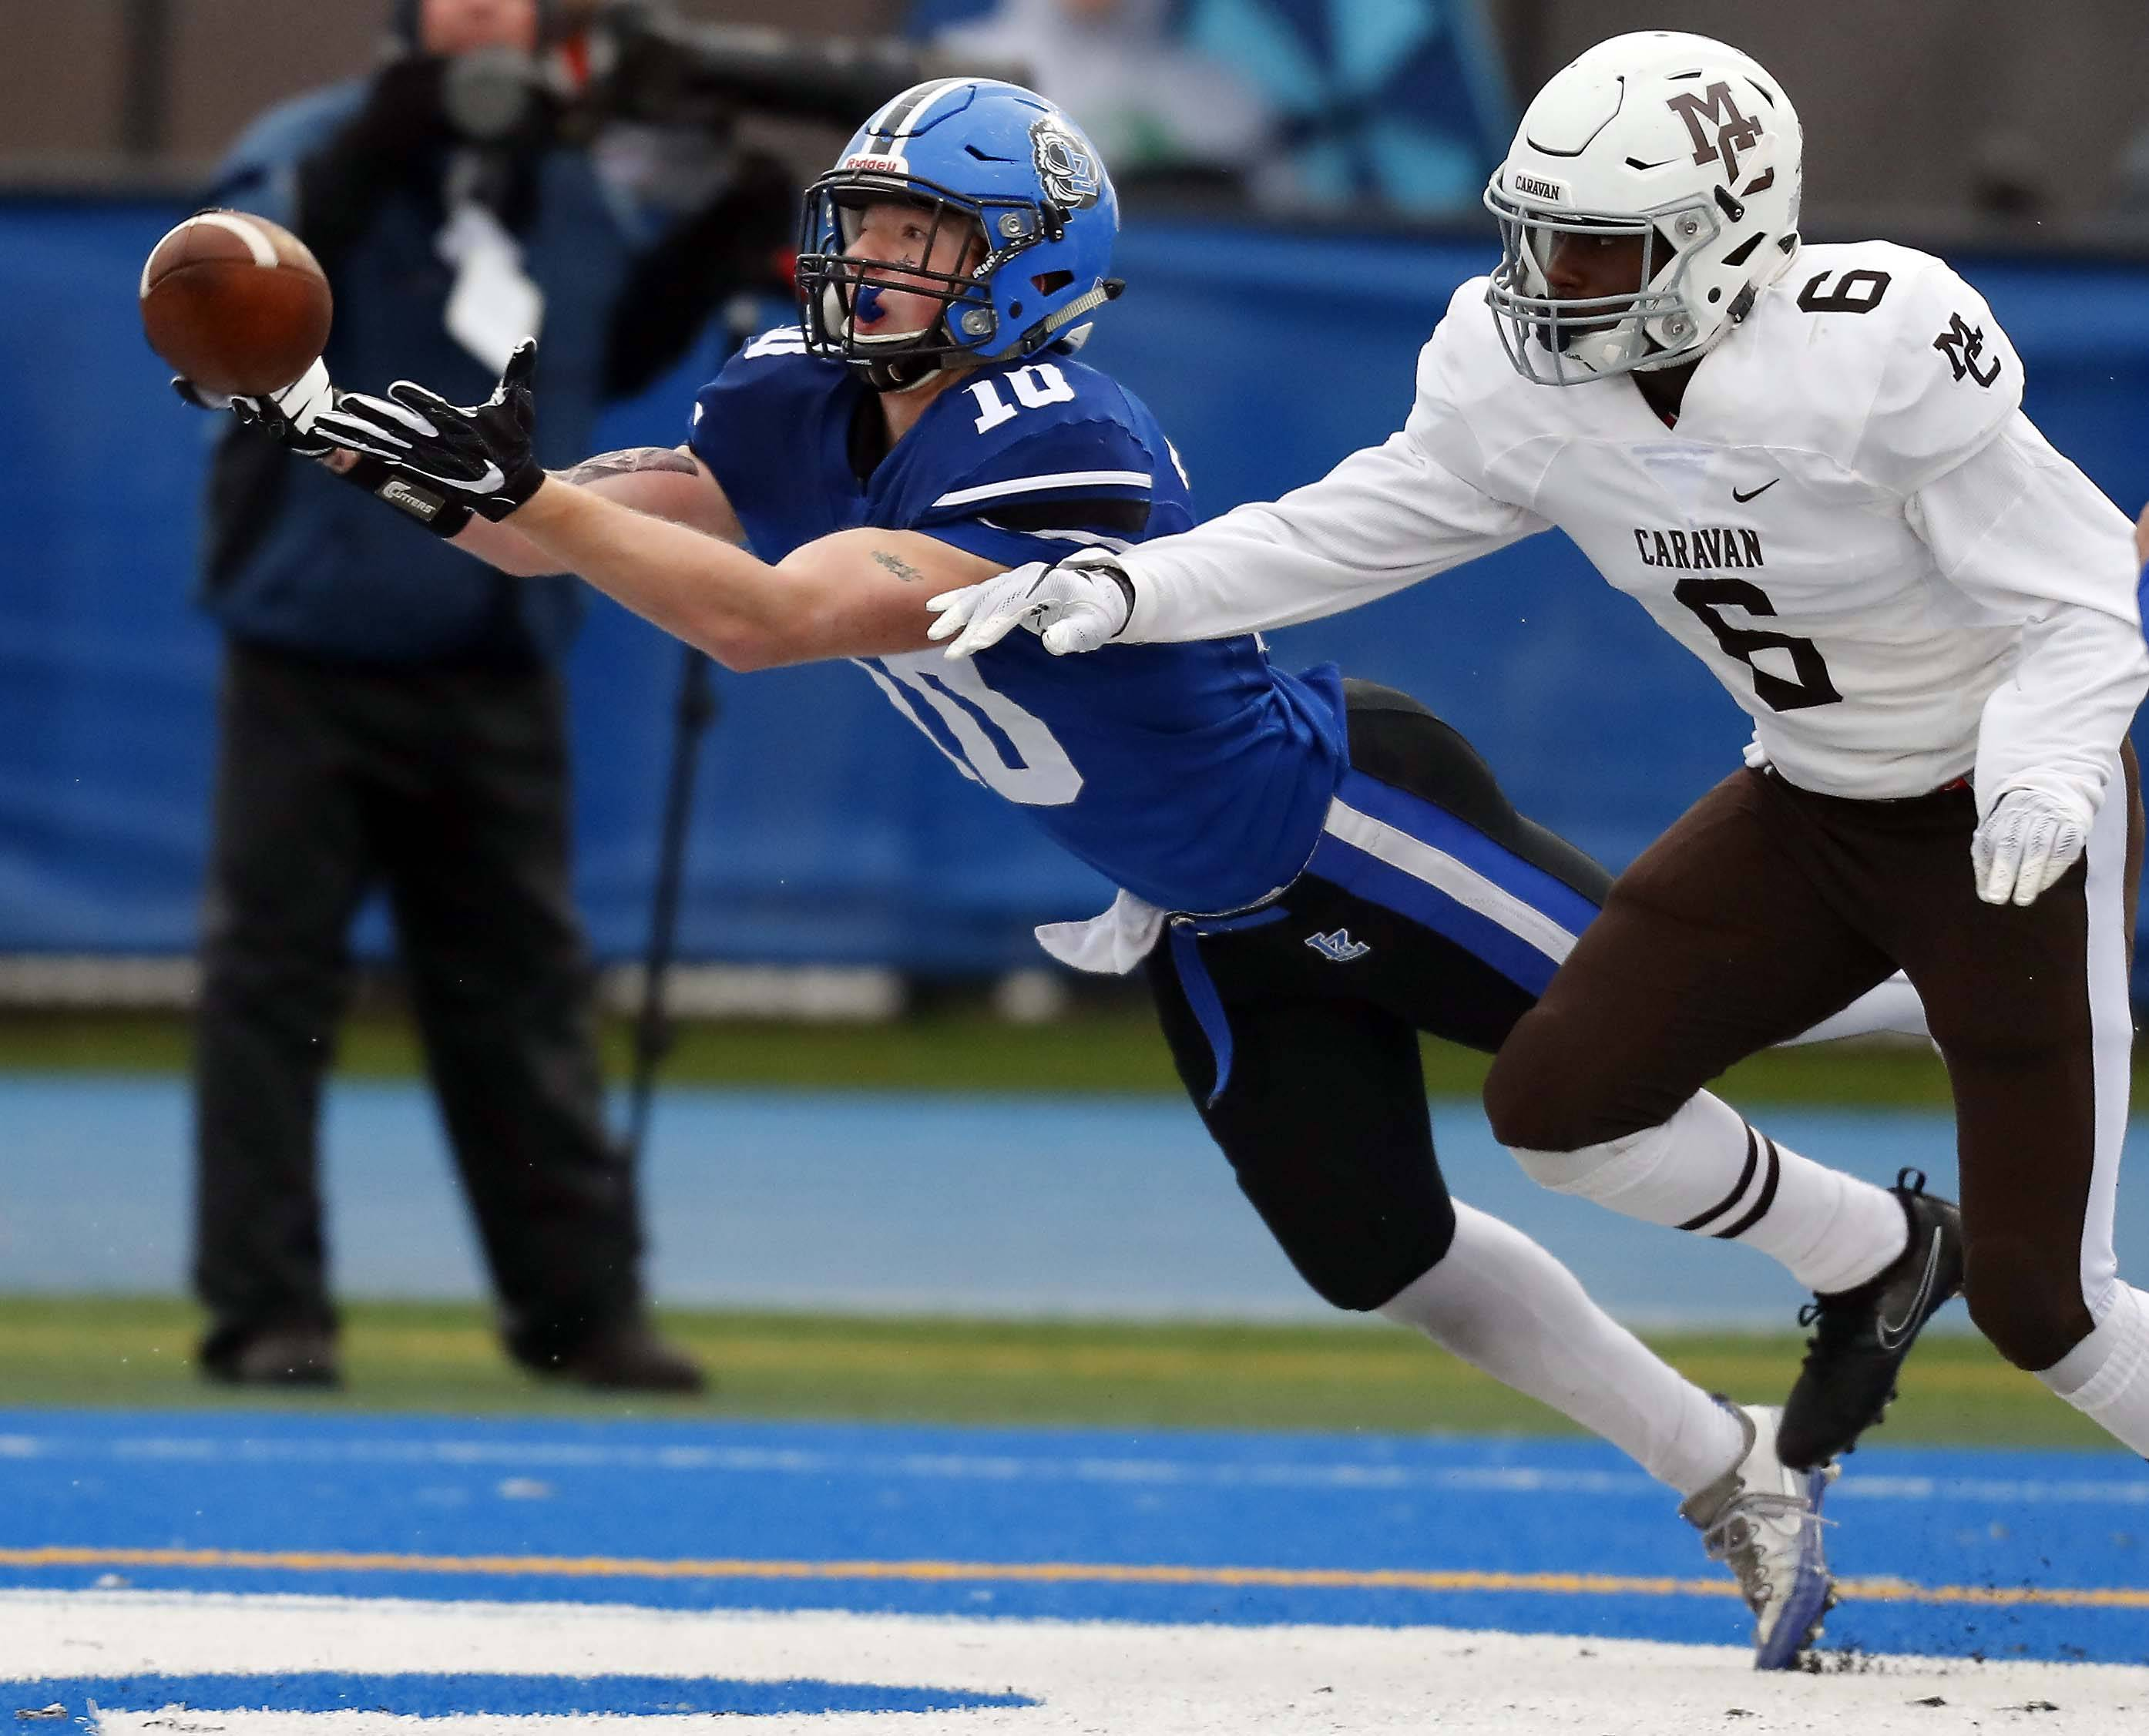 Lake Zurich's Matthijs Enters (10) tries to reel in a pass as Mount Carmel's Connor Lane (6) tries to stop him Saturday during the Class 7A state semifinals.